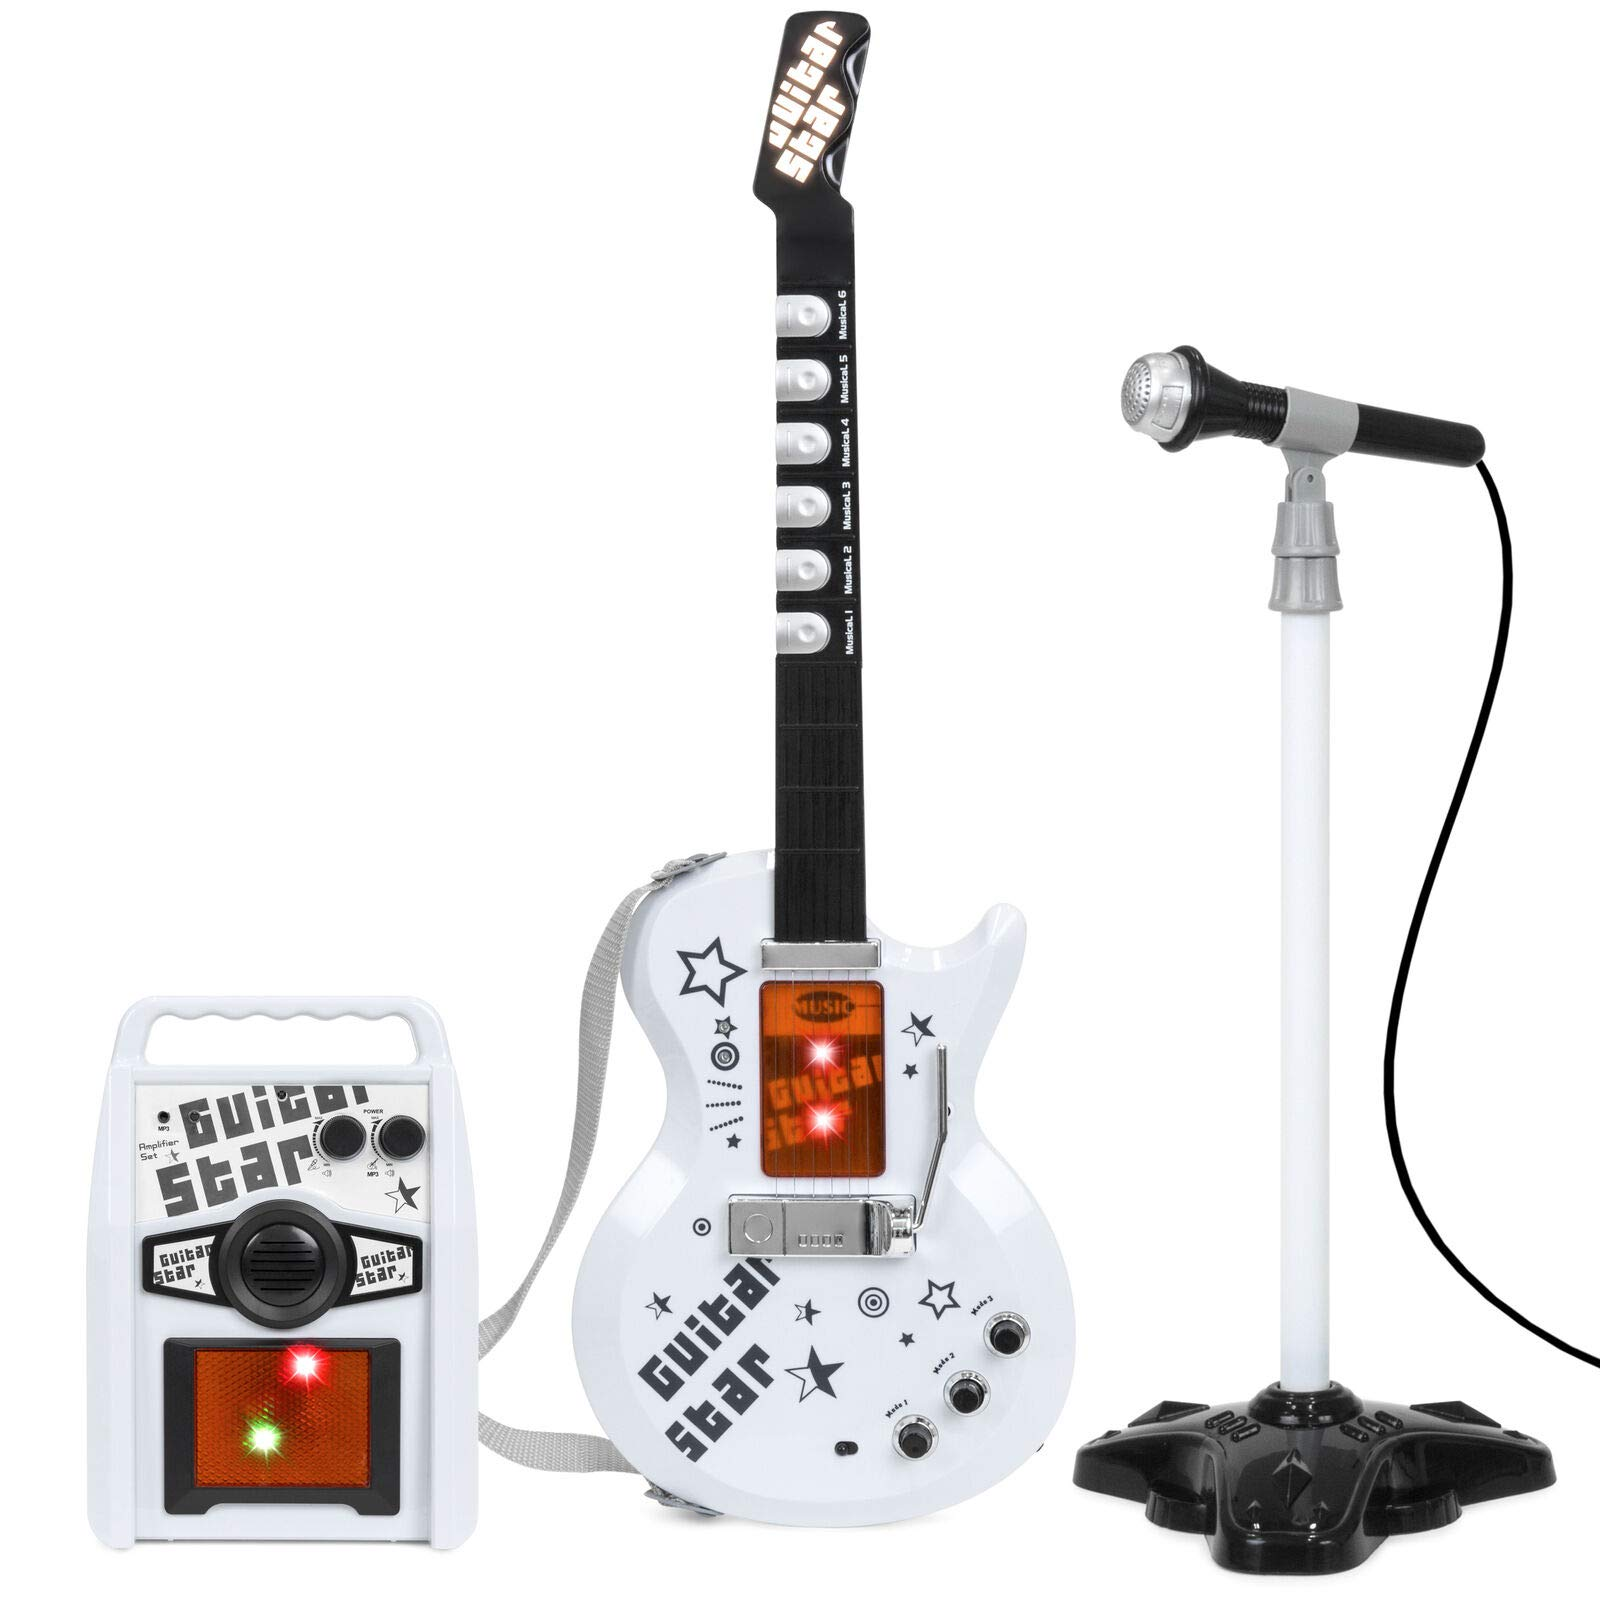 Lonestar Wholesalers White Kids Electric Guitar Toy Play Set w/ 6 Songs Microphone Amp by Lonestar Wholesalers